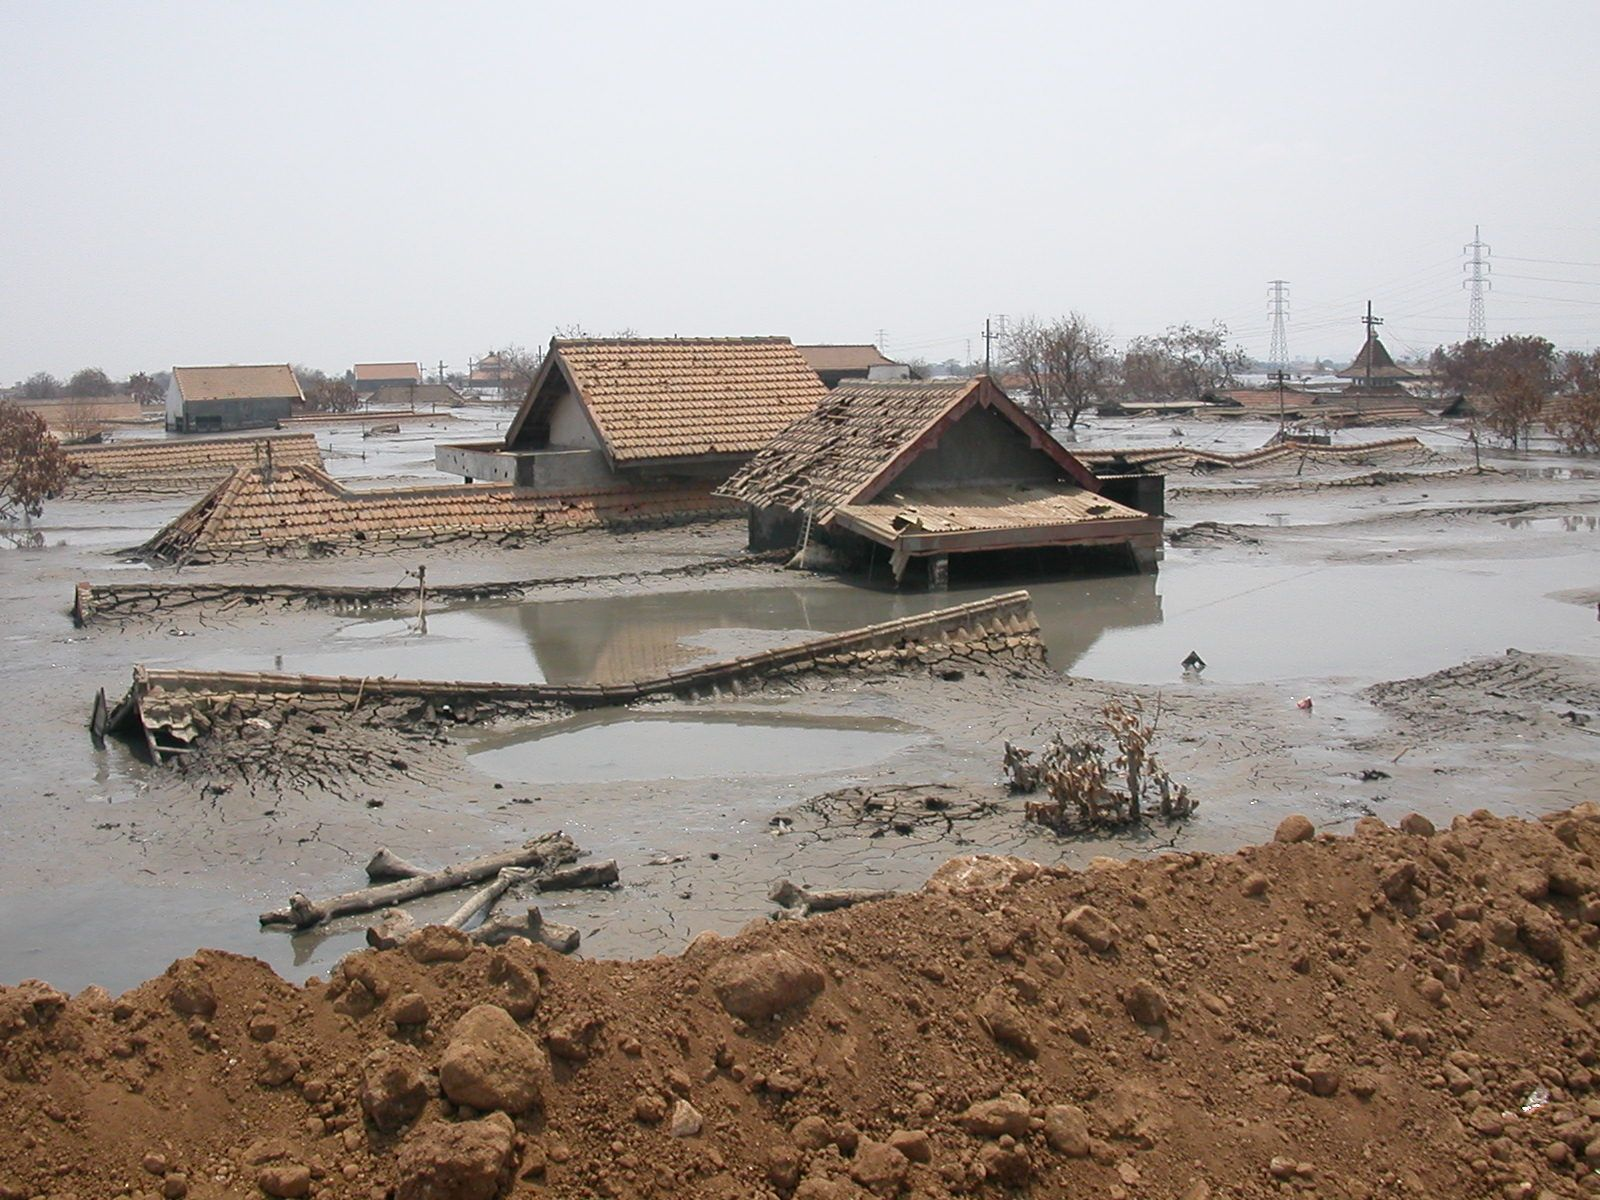 Sidoarjo - a village embedded in mud in 2006